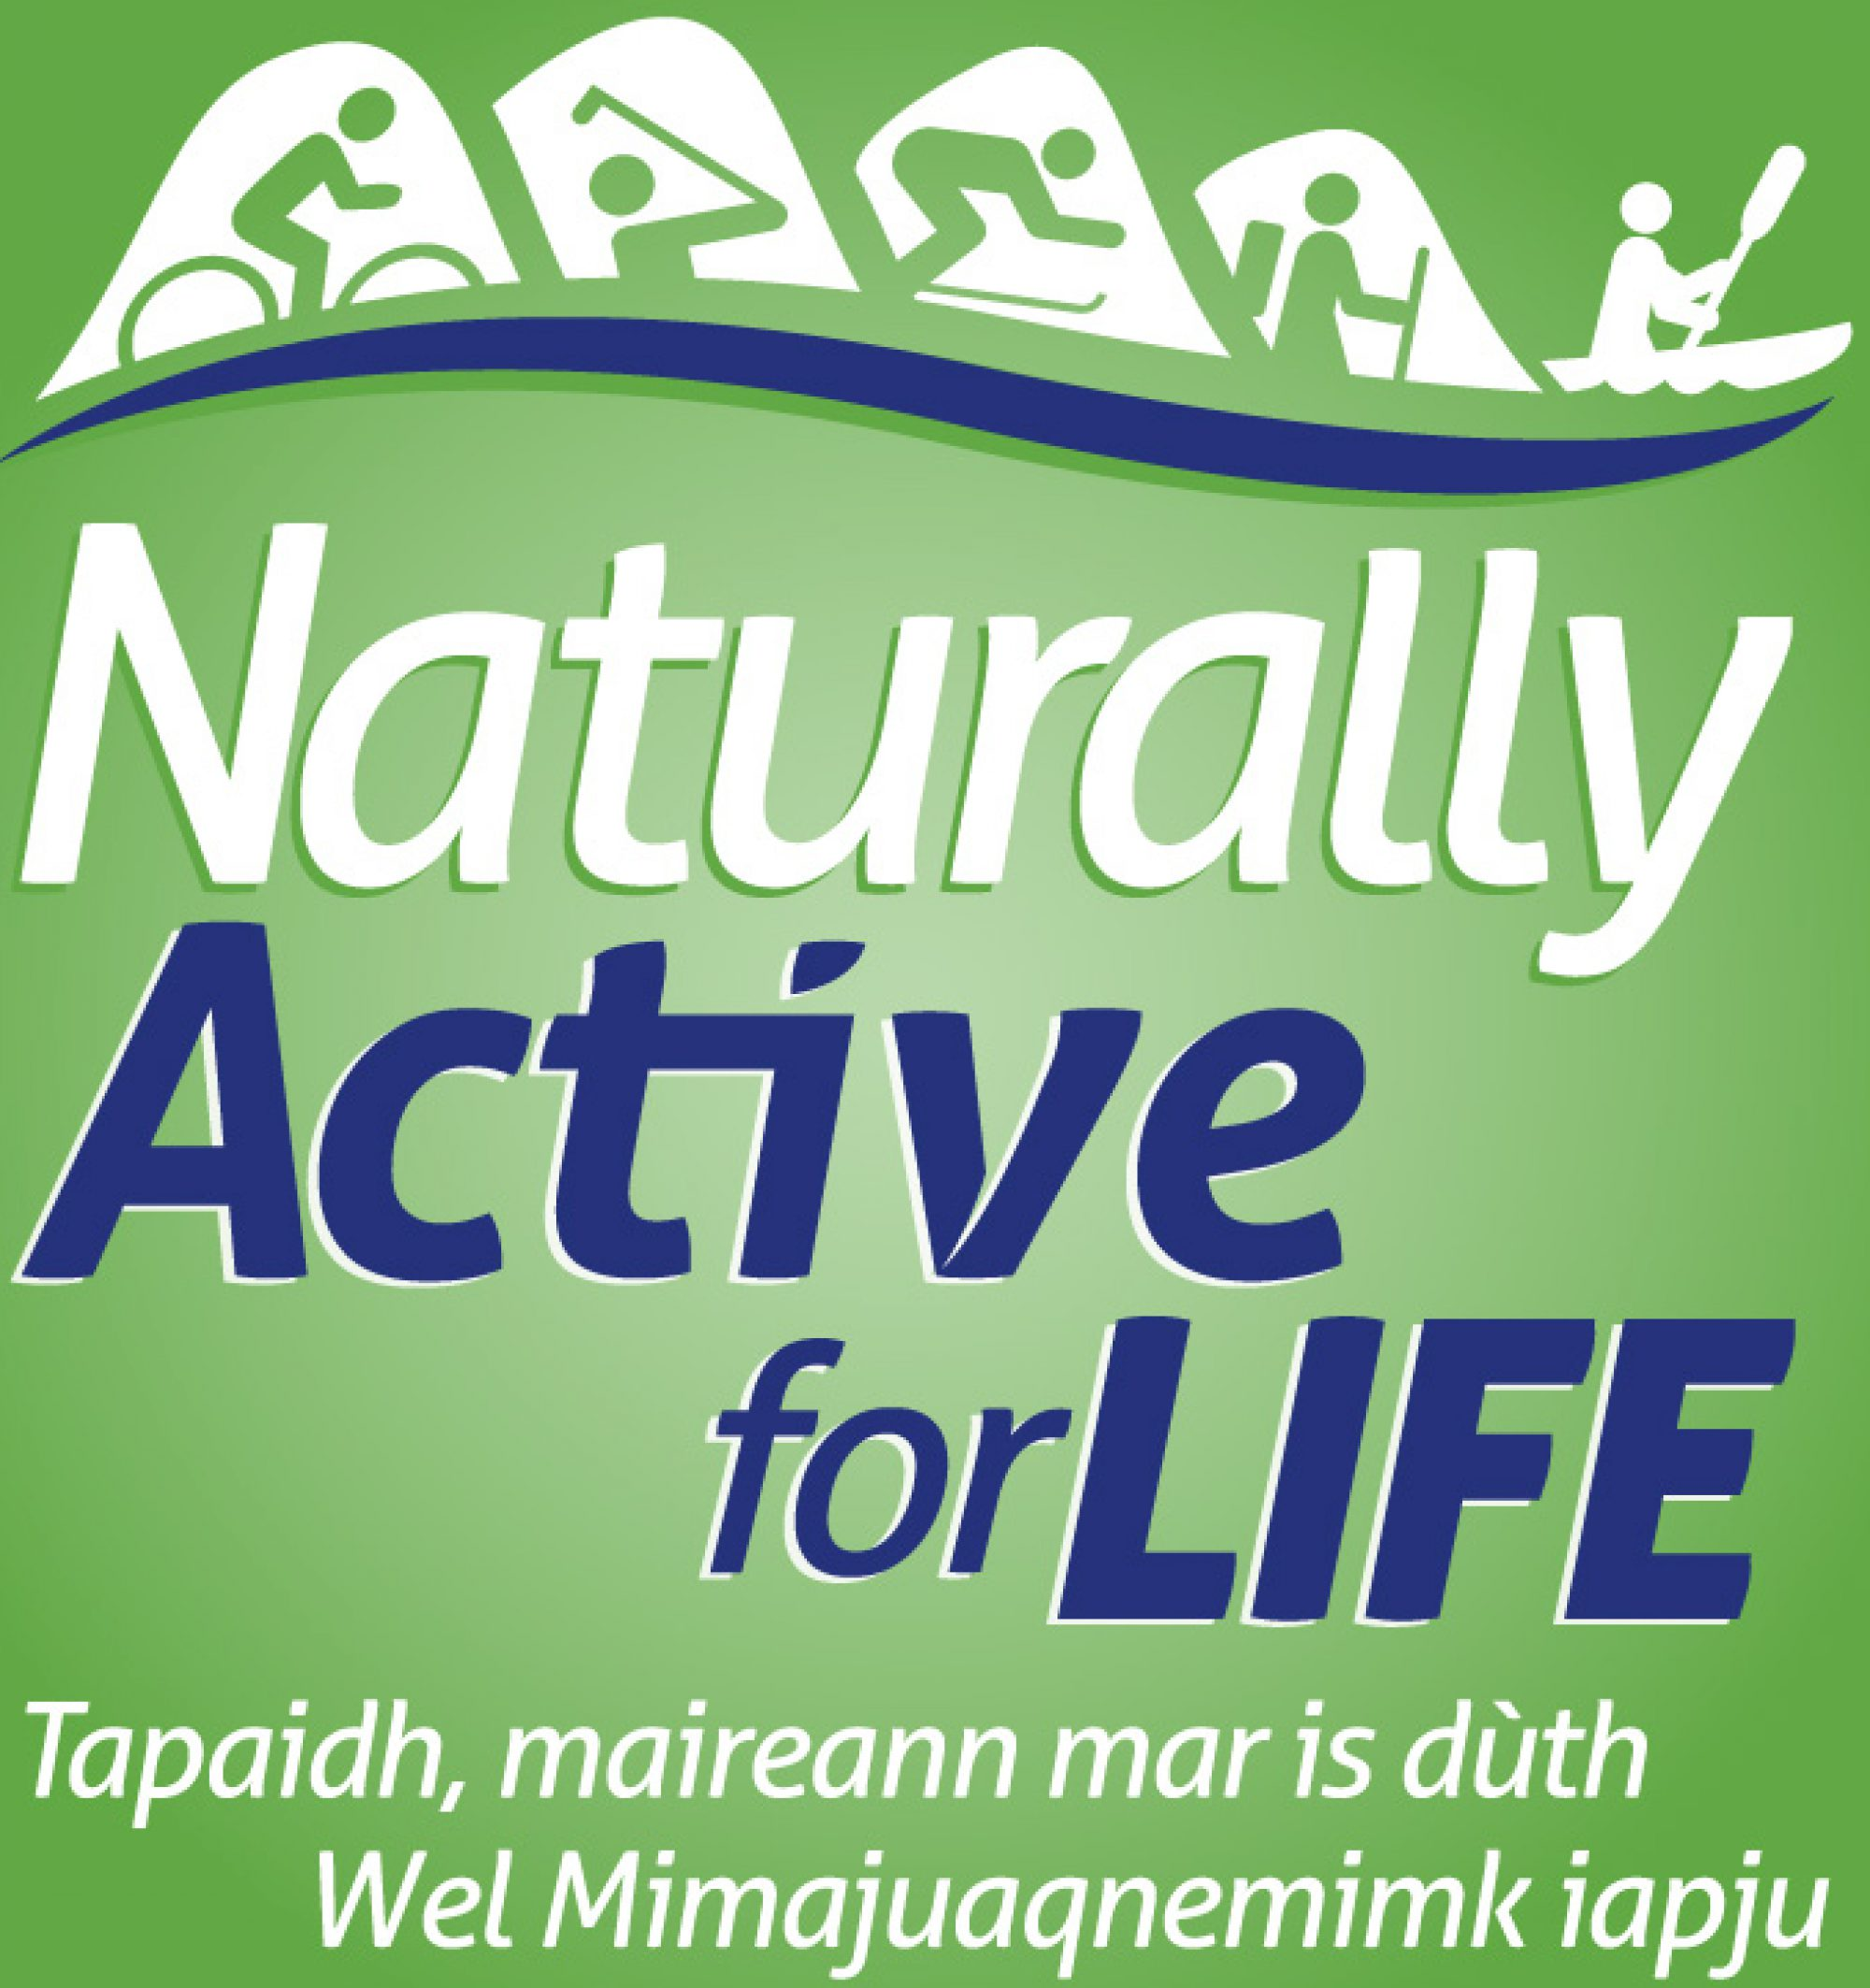 cropped-naturally-active-for-life-profile-logosocialmedia.jpg